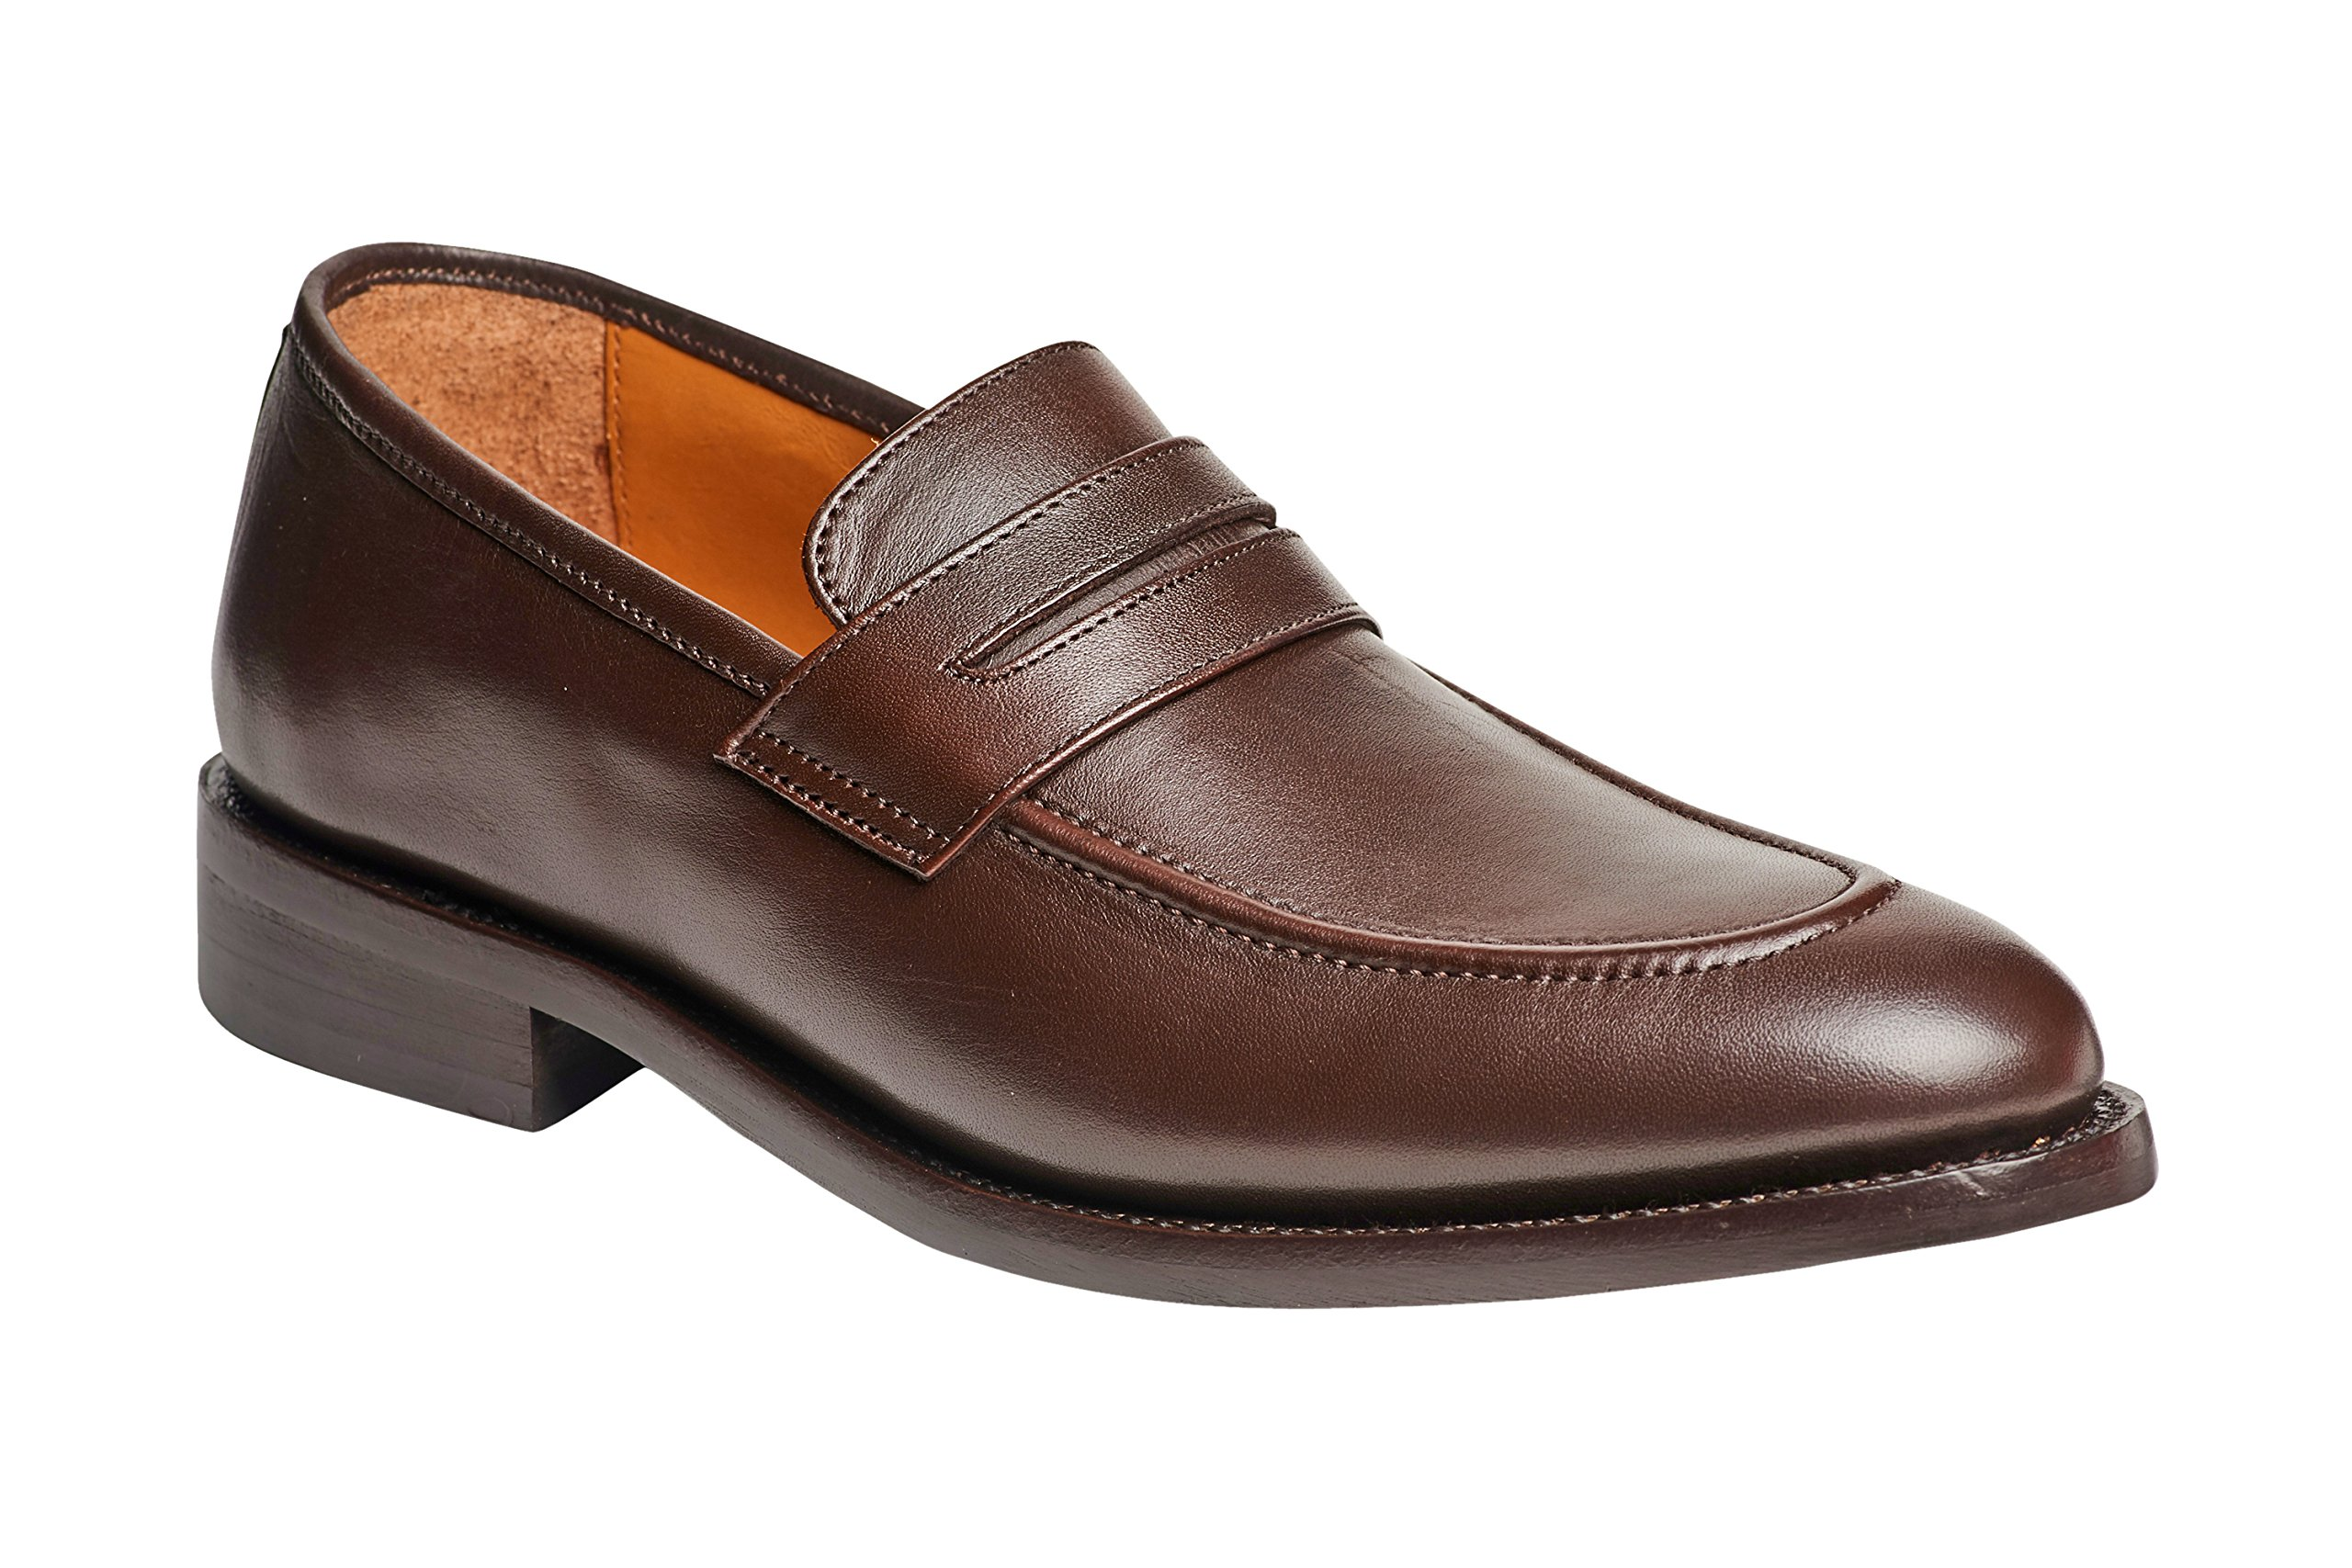 Carlos by Carlos Santana Men's Navarro Penny Loafer In Goodyear Welted Construction (10 D, Brown)